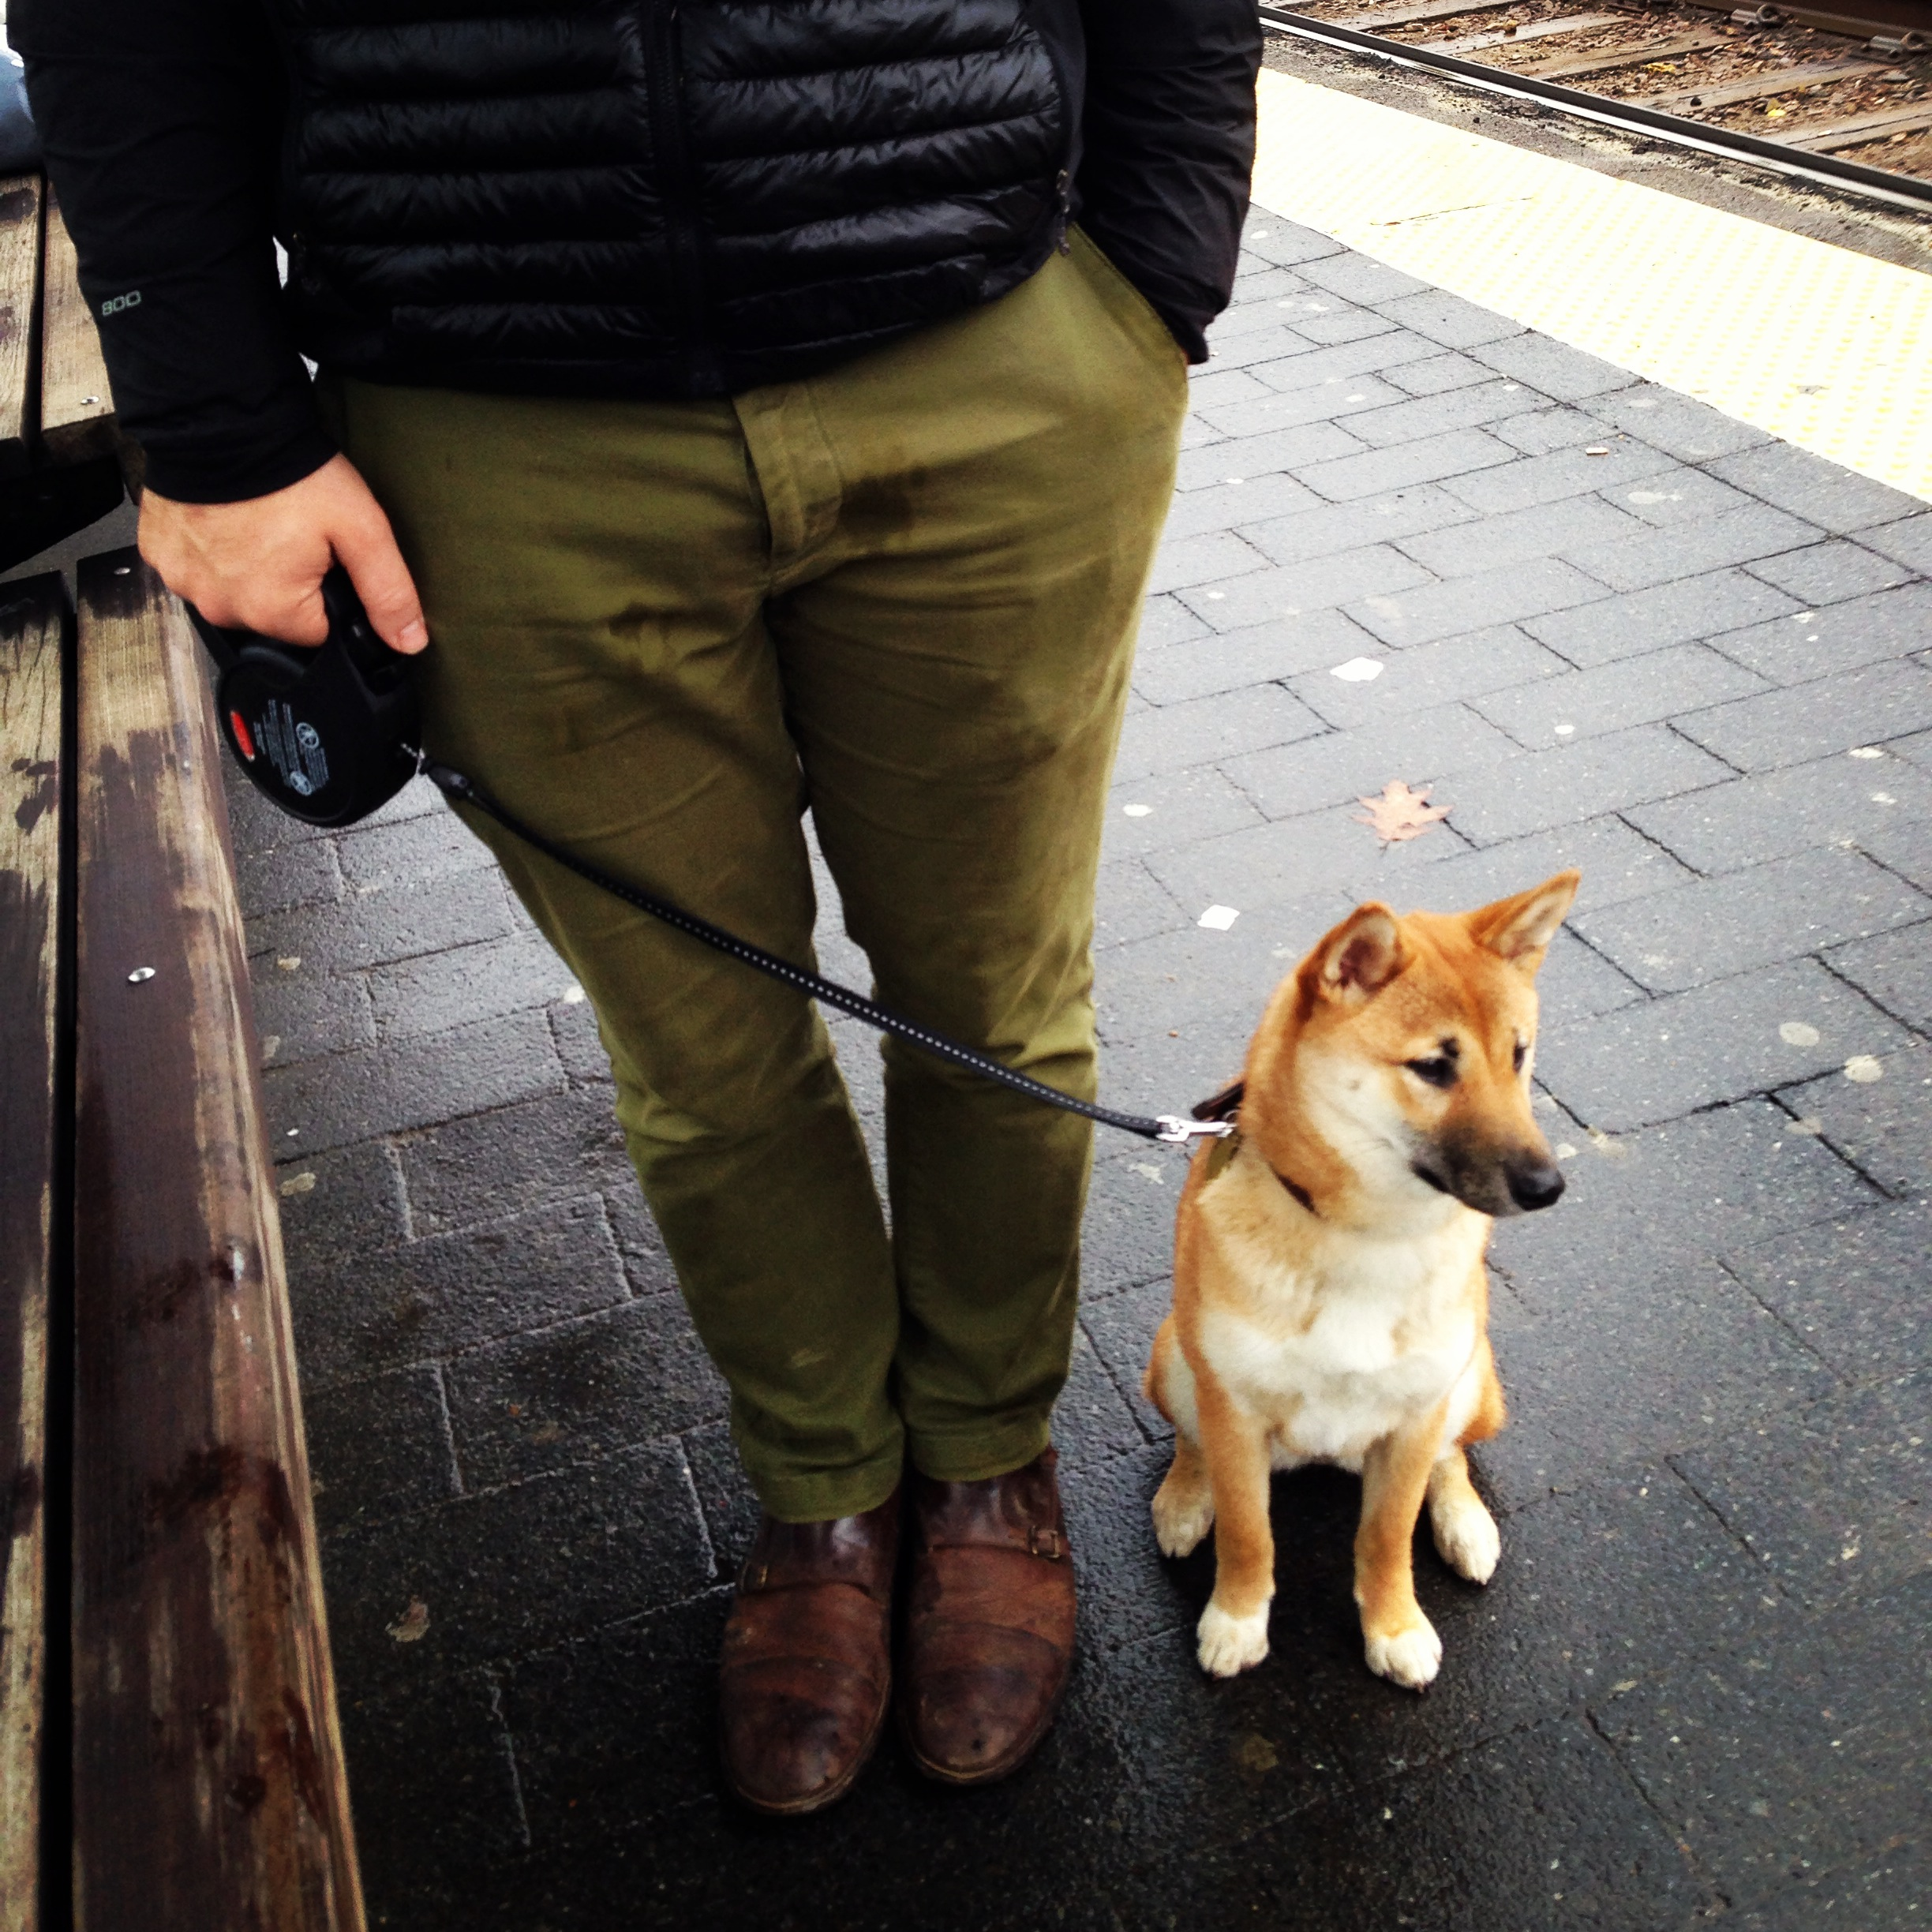 Me and Maple, my Shiba Inu (it all makes sense now!) And yes, the orange in the app was pulled directly from her fur. :)